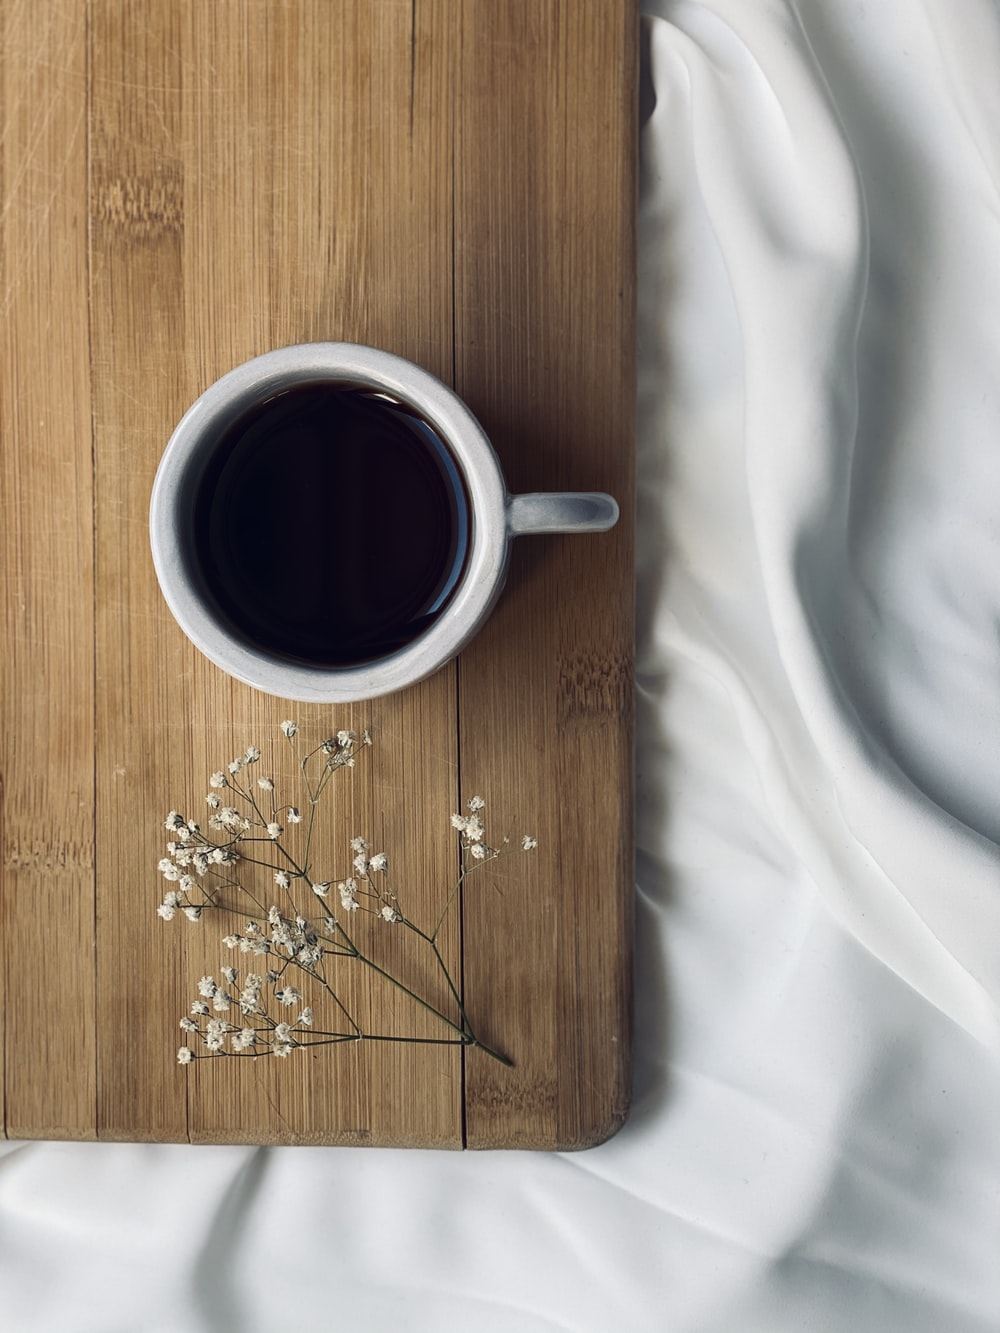 black coffee in white ceramic mug on brown wooden table